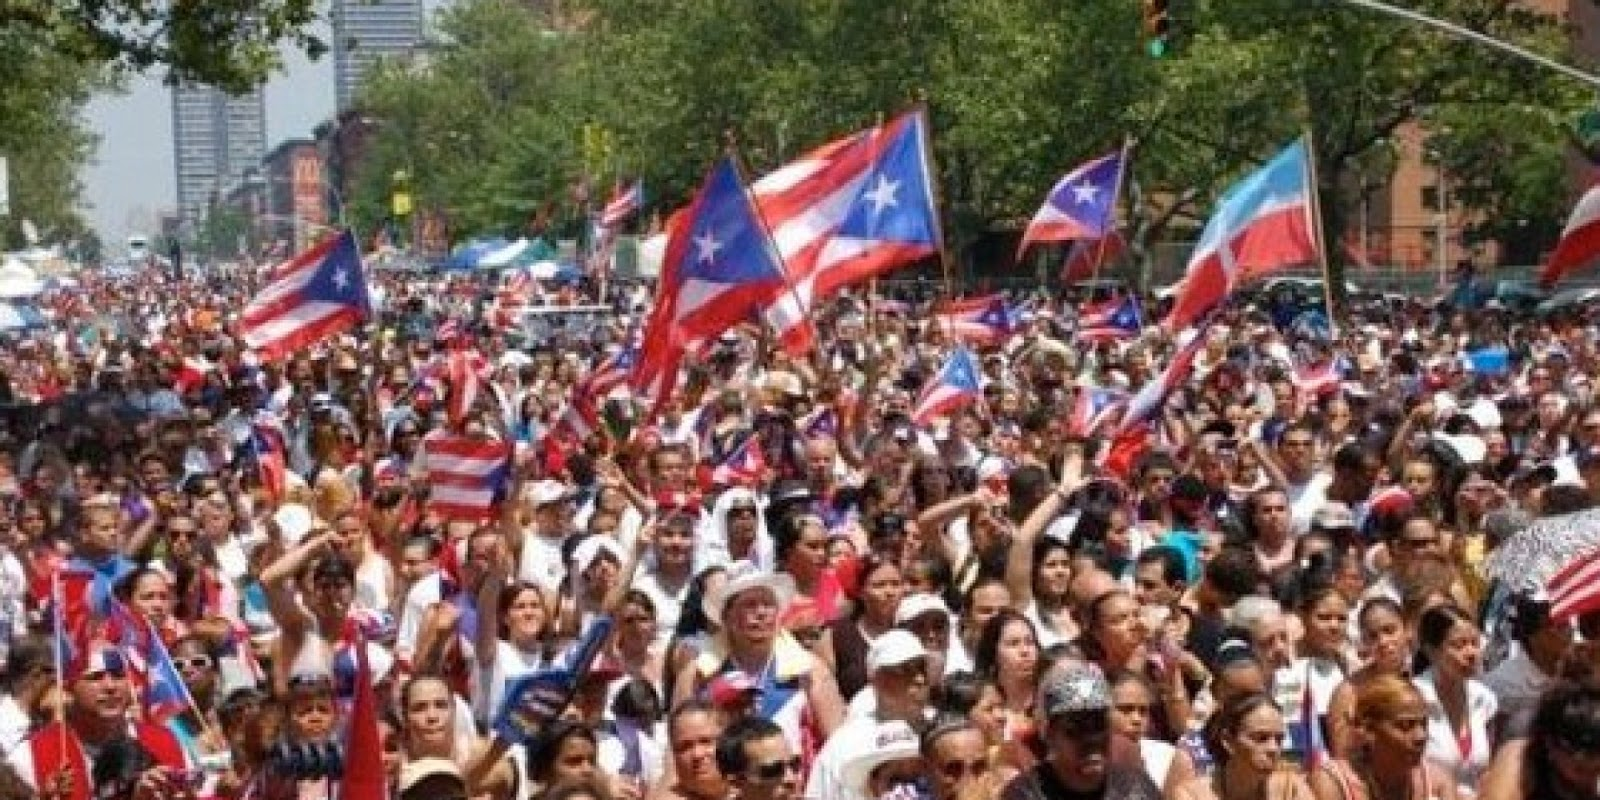 puerto ricans Puerto rican americans - history, modern era, early mainlander puerto ricans, significant immigration waves pa-sp.